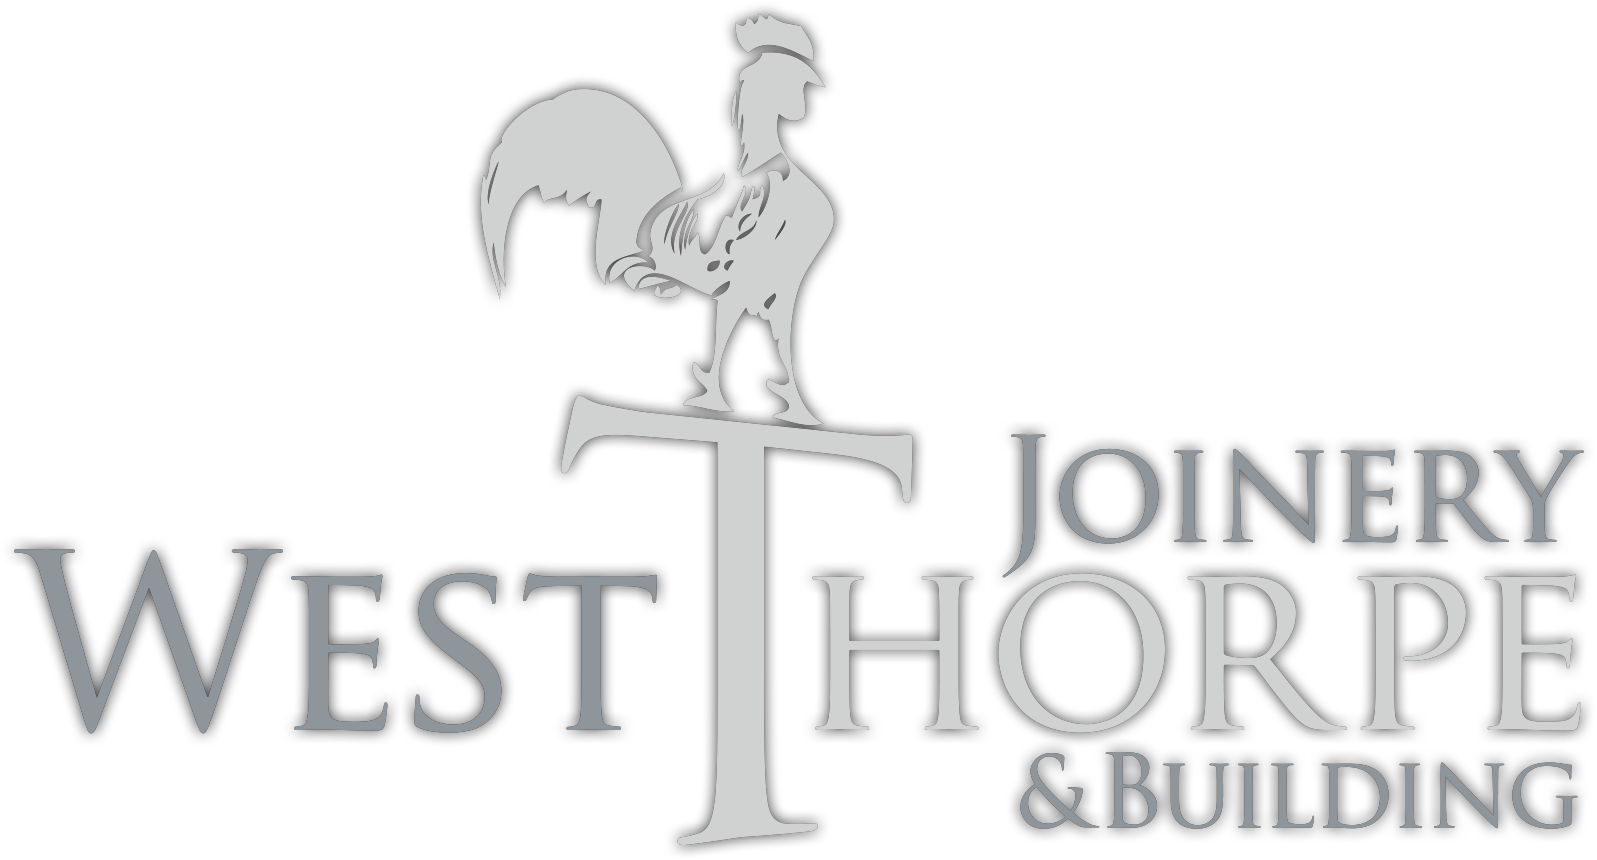 West Thorpe Joinery